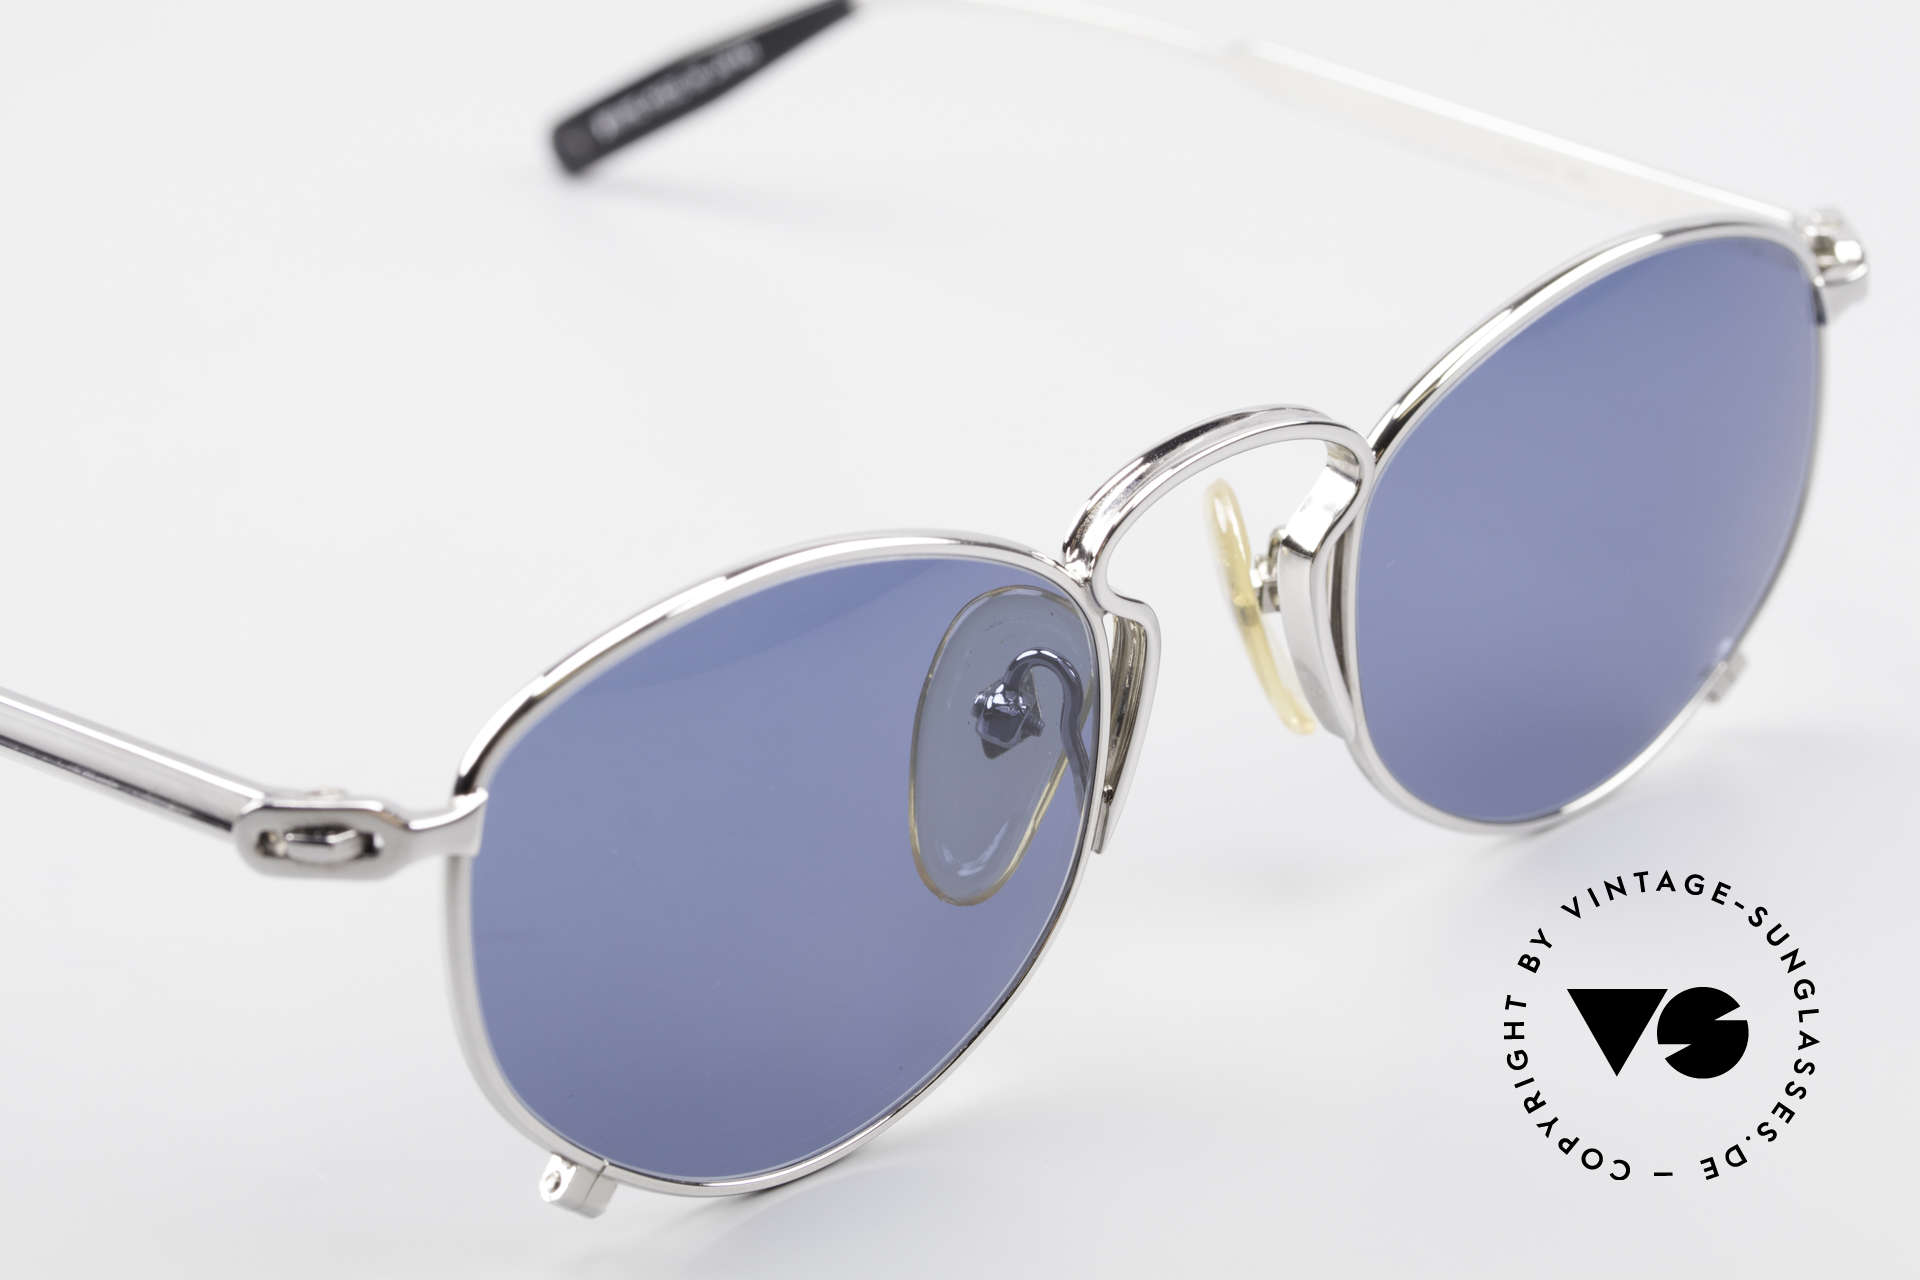 Jean Paul Gaultier 55-1171 90's JPG Designer Sunglasses, the frame can be glazed with optical (sun) lenses, Made for Men and Women